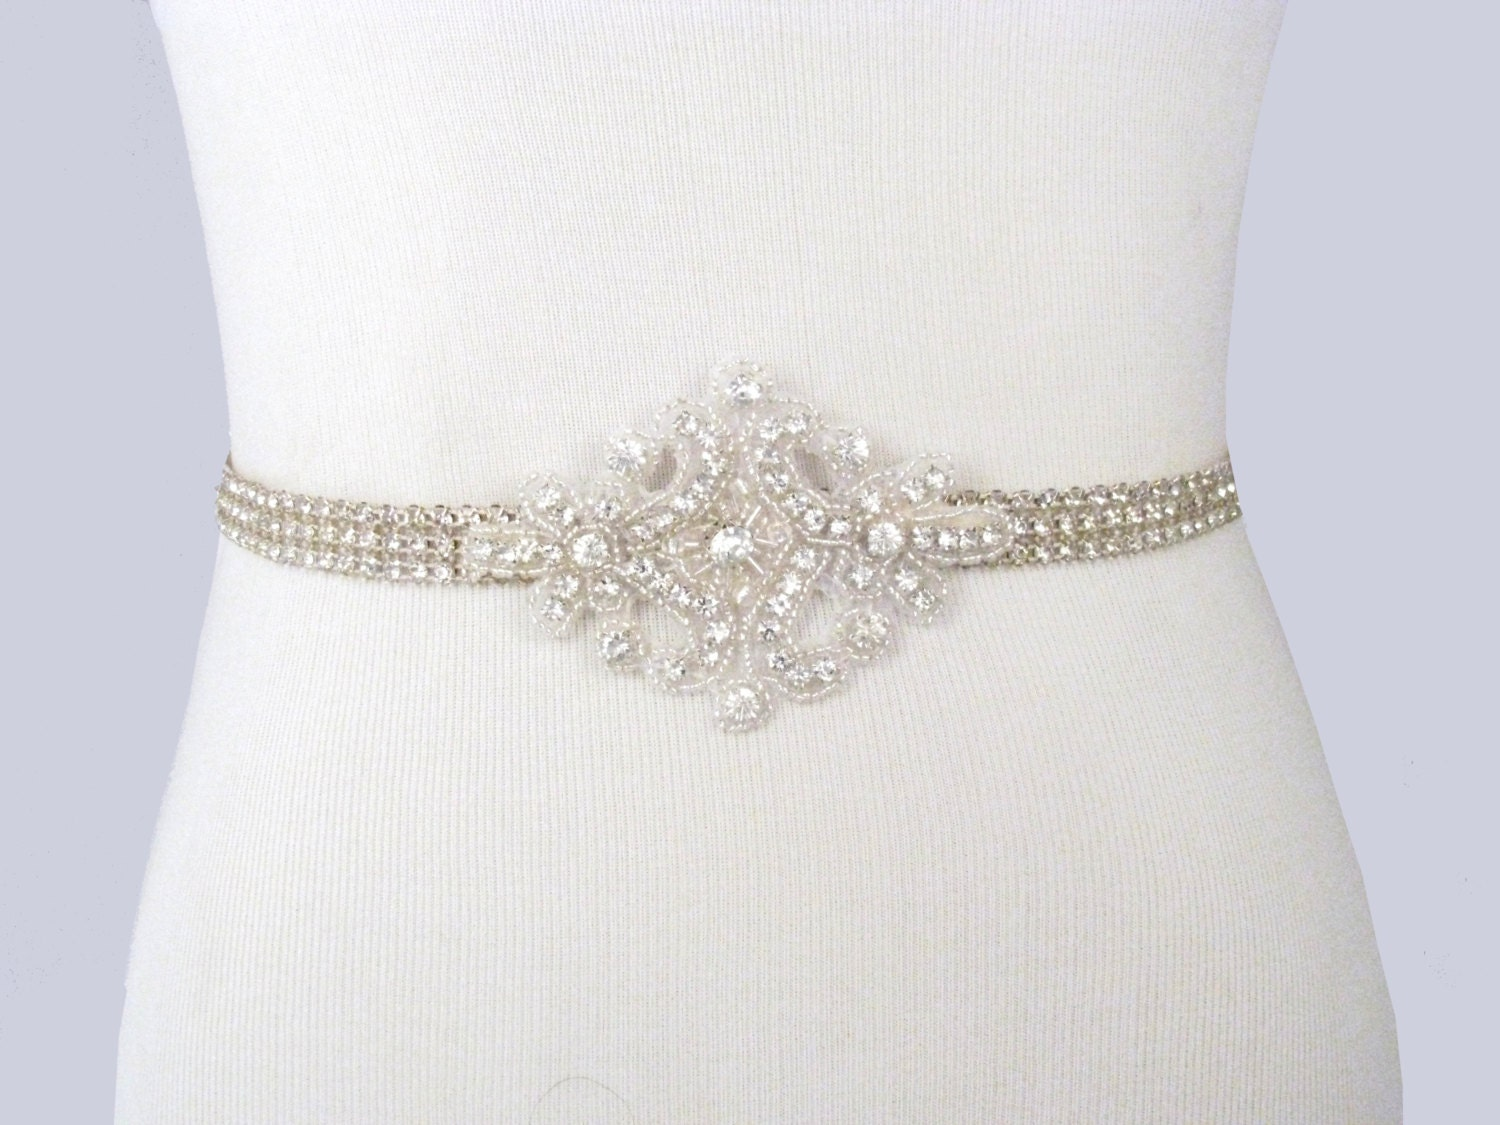 Bridal sash rhinestone wedding belt crystal dress sash for Belts for wedding dress